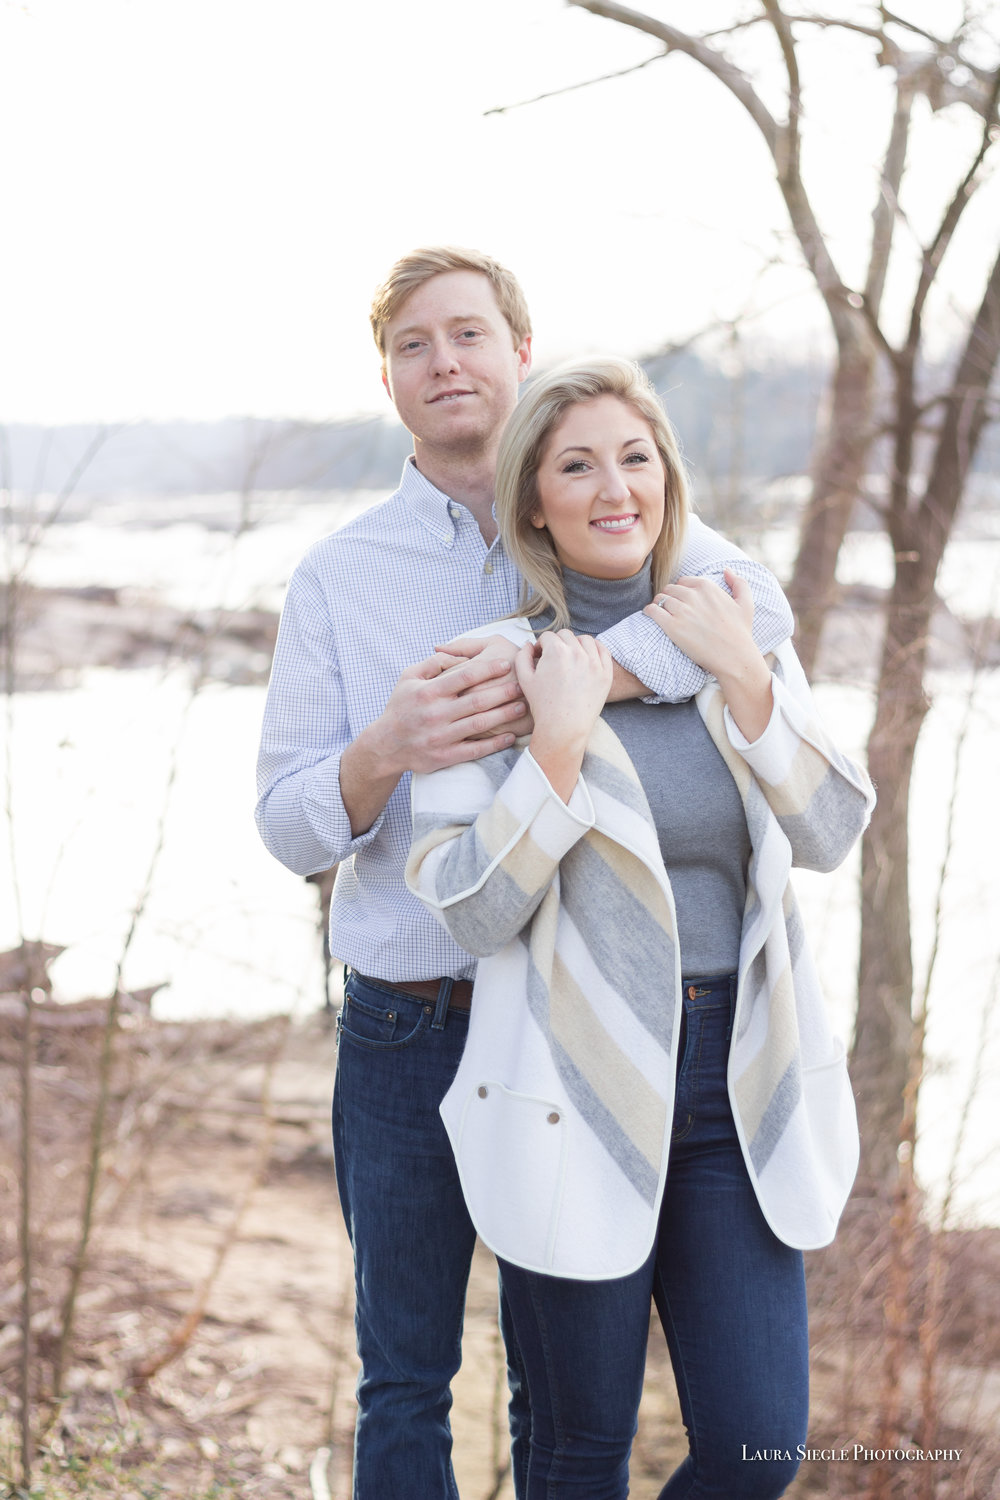 Amelia photographer richmond engagement portait photography photo virginia